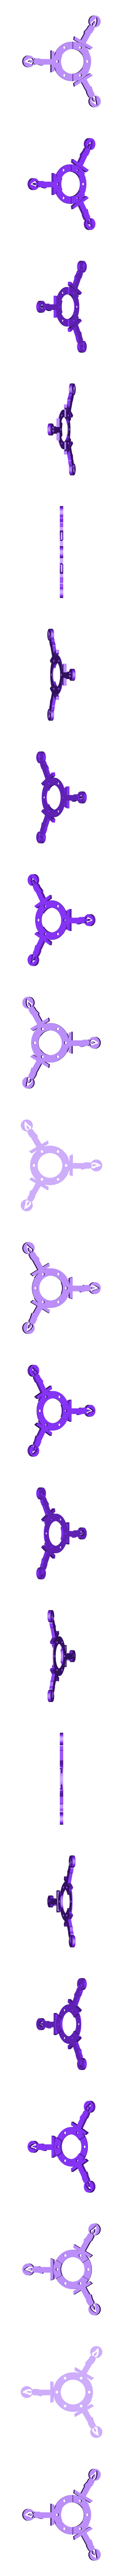 Xmas_Spinner_-_Candle.stl Download free STL file Christmas Spinners • Model to 3D print, Zippityboomba